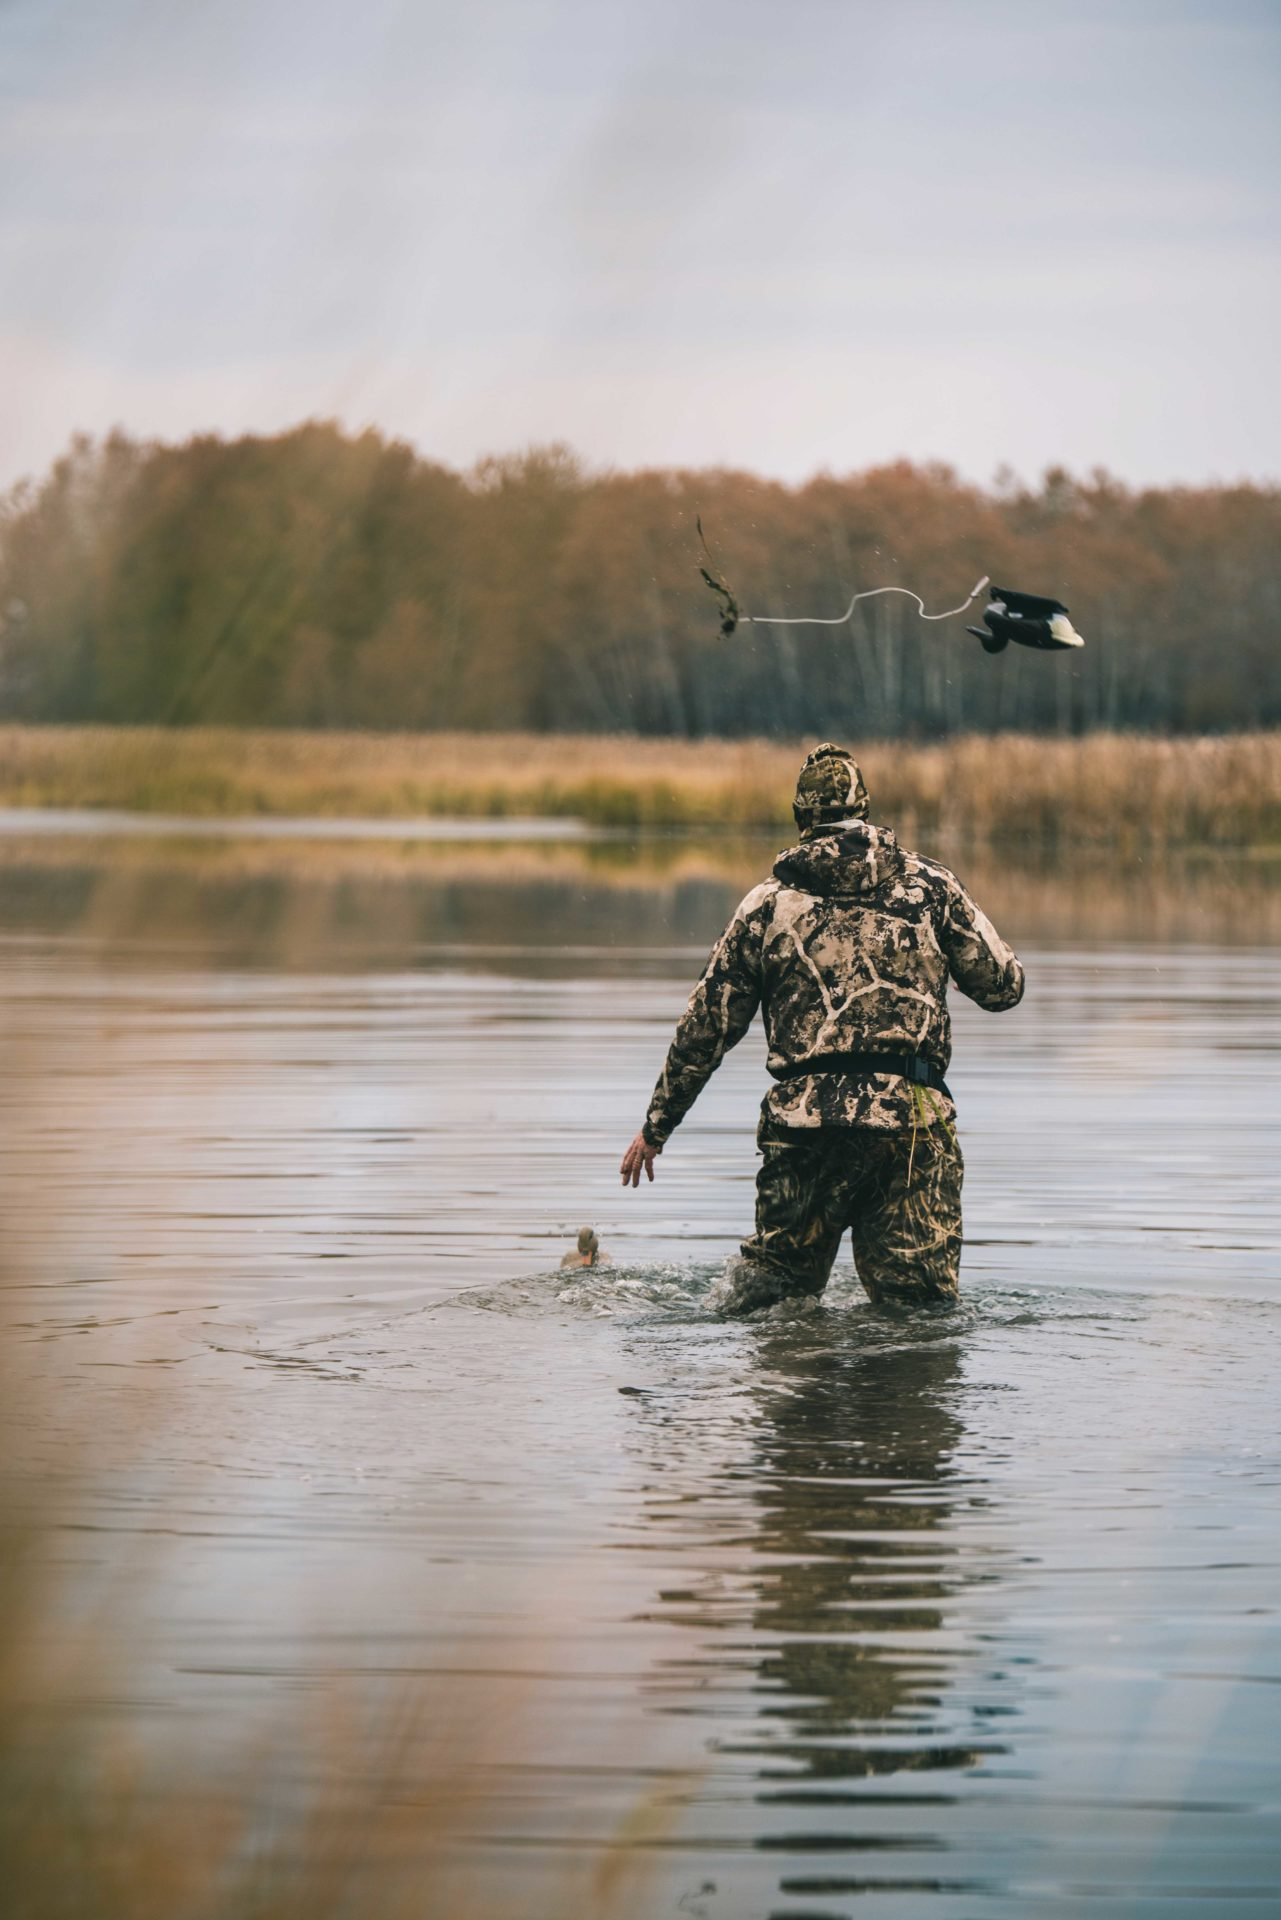 Although not essential, decoys are a great tool for tricking waterfowl into landing exactly where you want them. Photo by Curtis Hall.